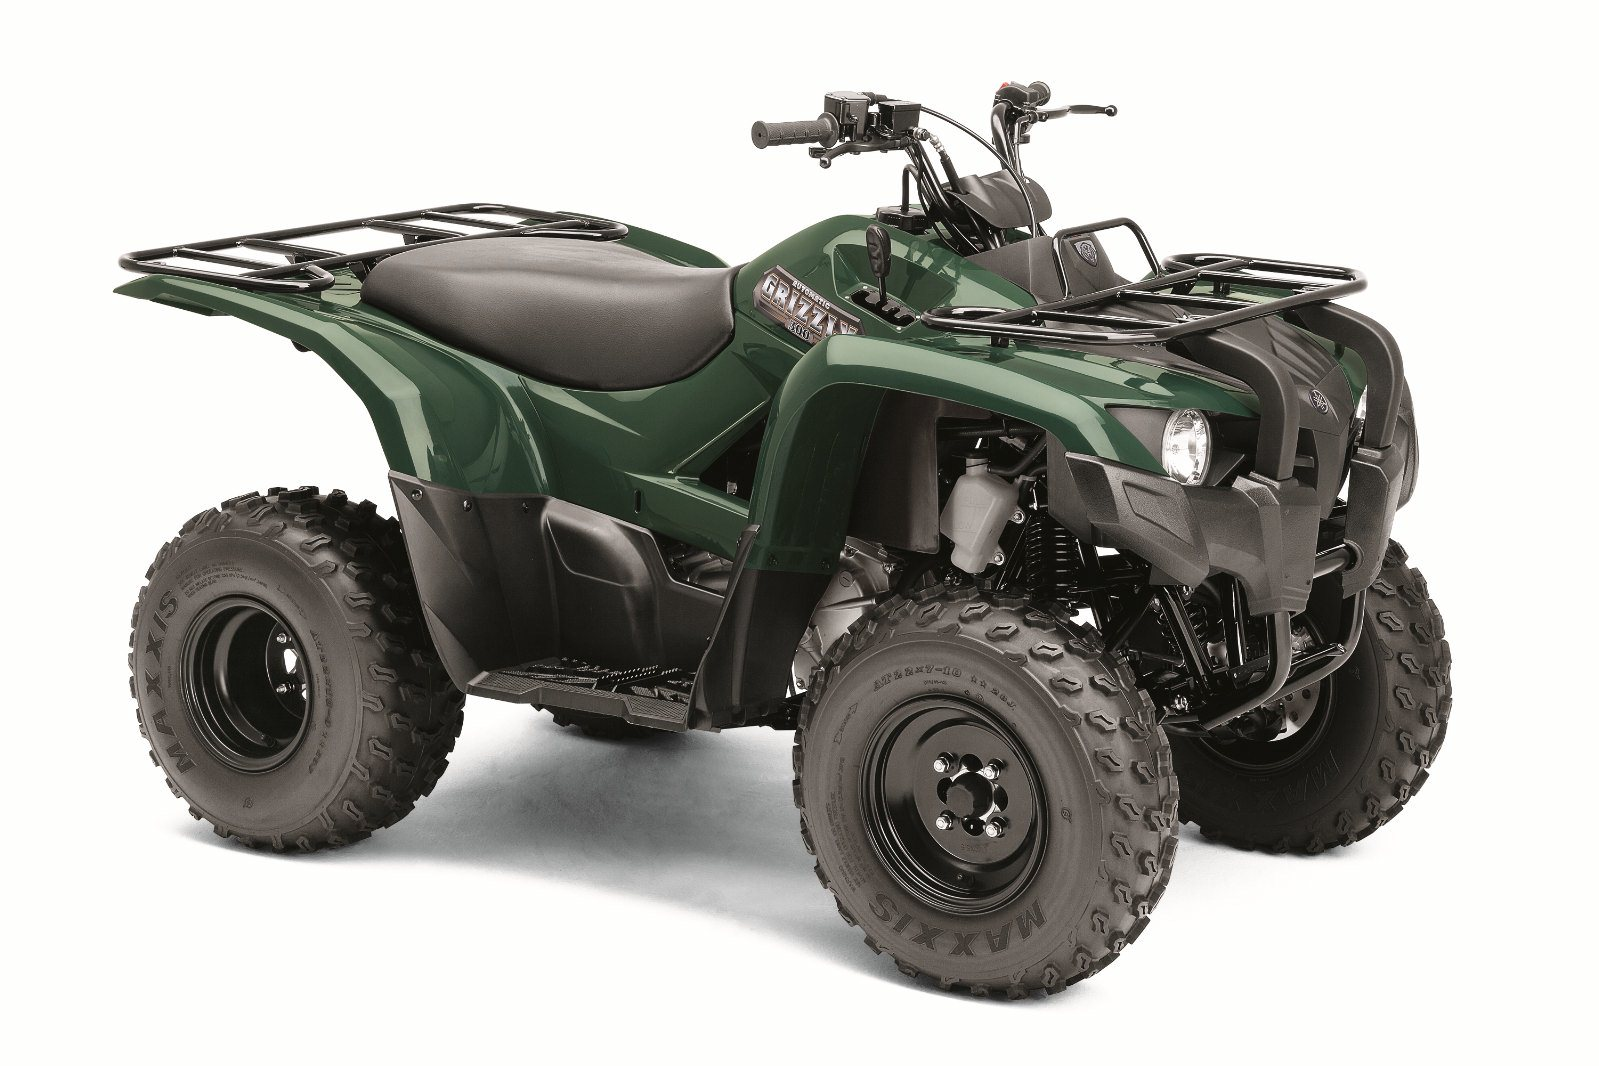 2012 Yamaha Grizzly 450 Wiring Diagram Trusted Diagrams 2008 300 Search For U2022 Kodiak 400